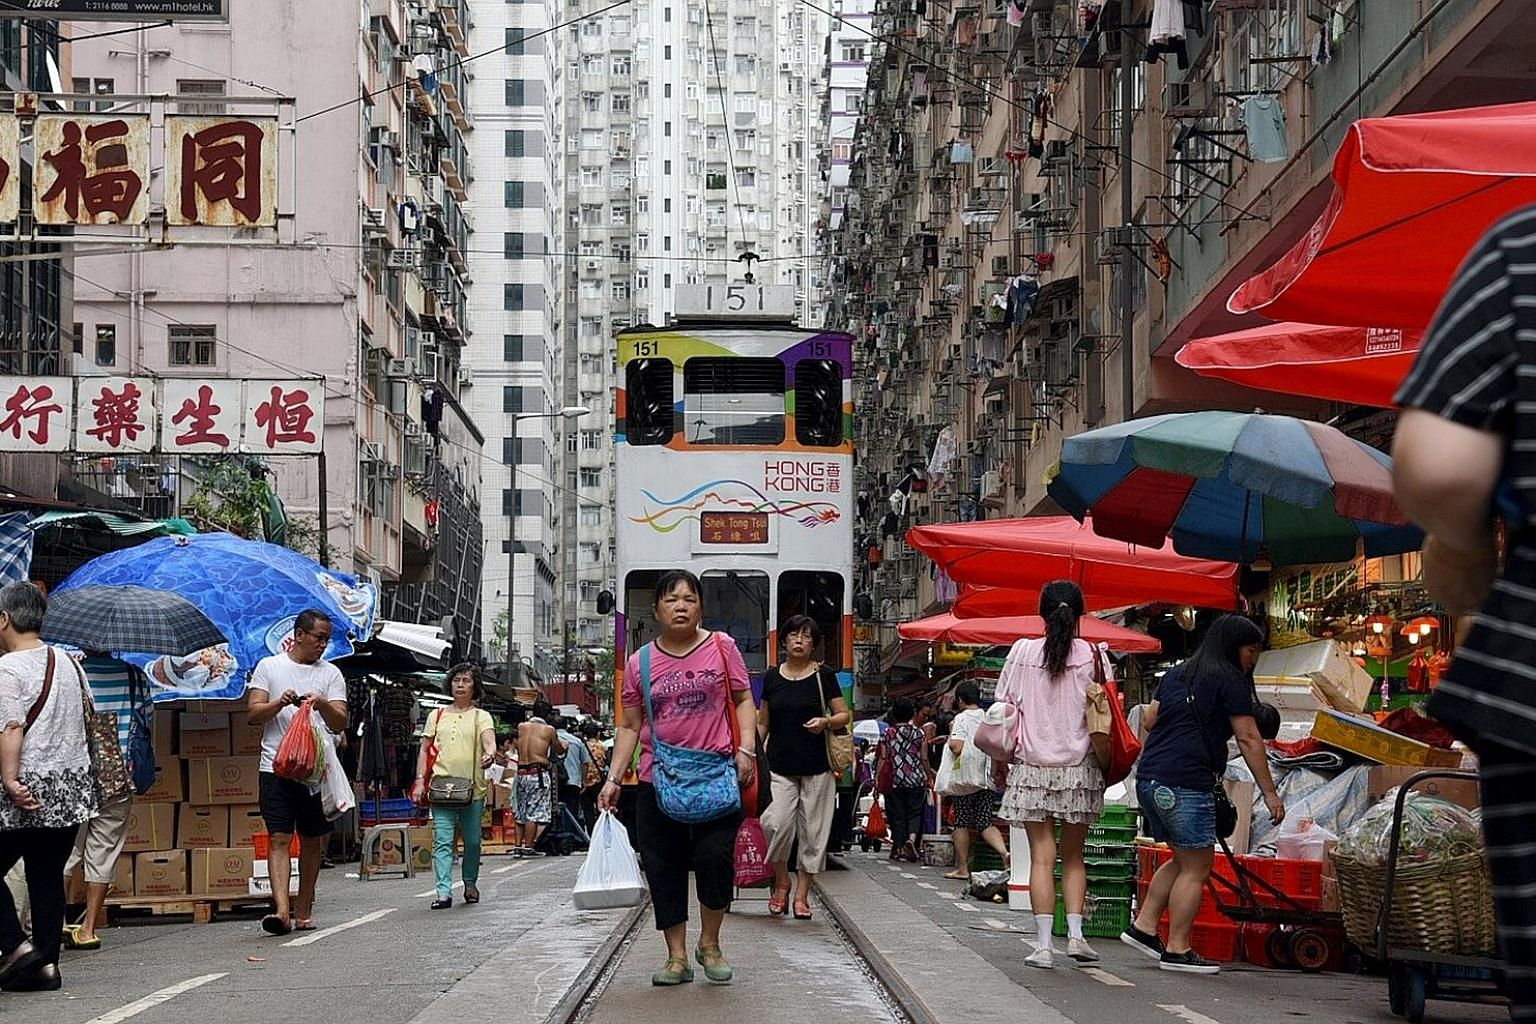 Hong Kong's trams are a sentimental favourite and a charming tourist draw.